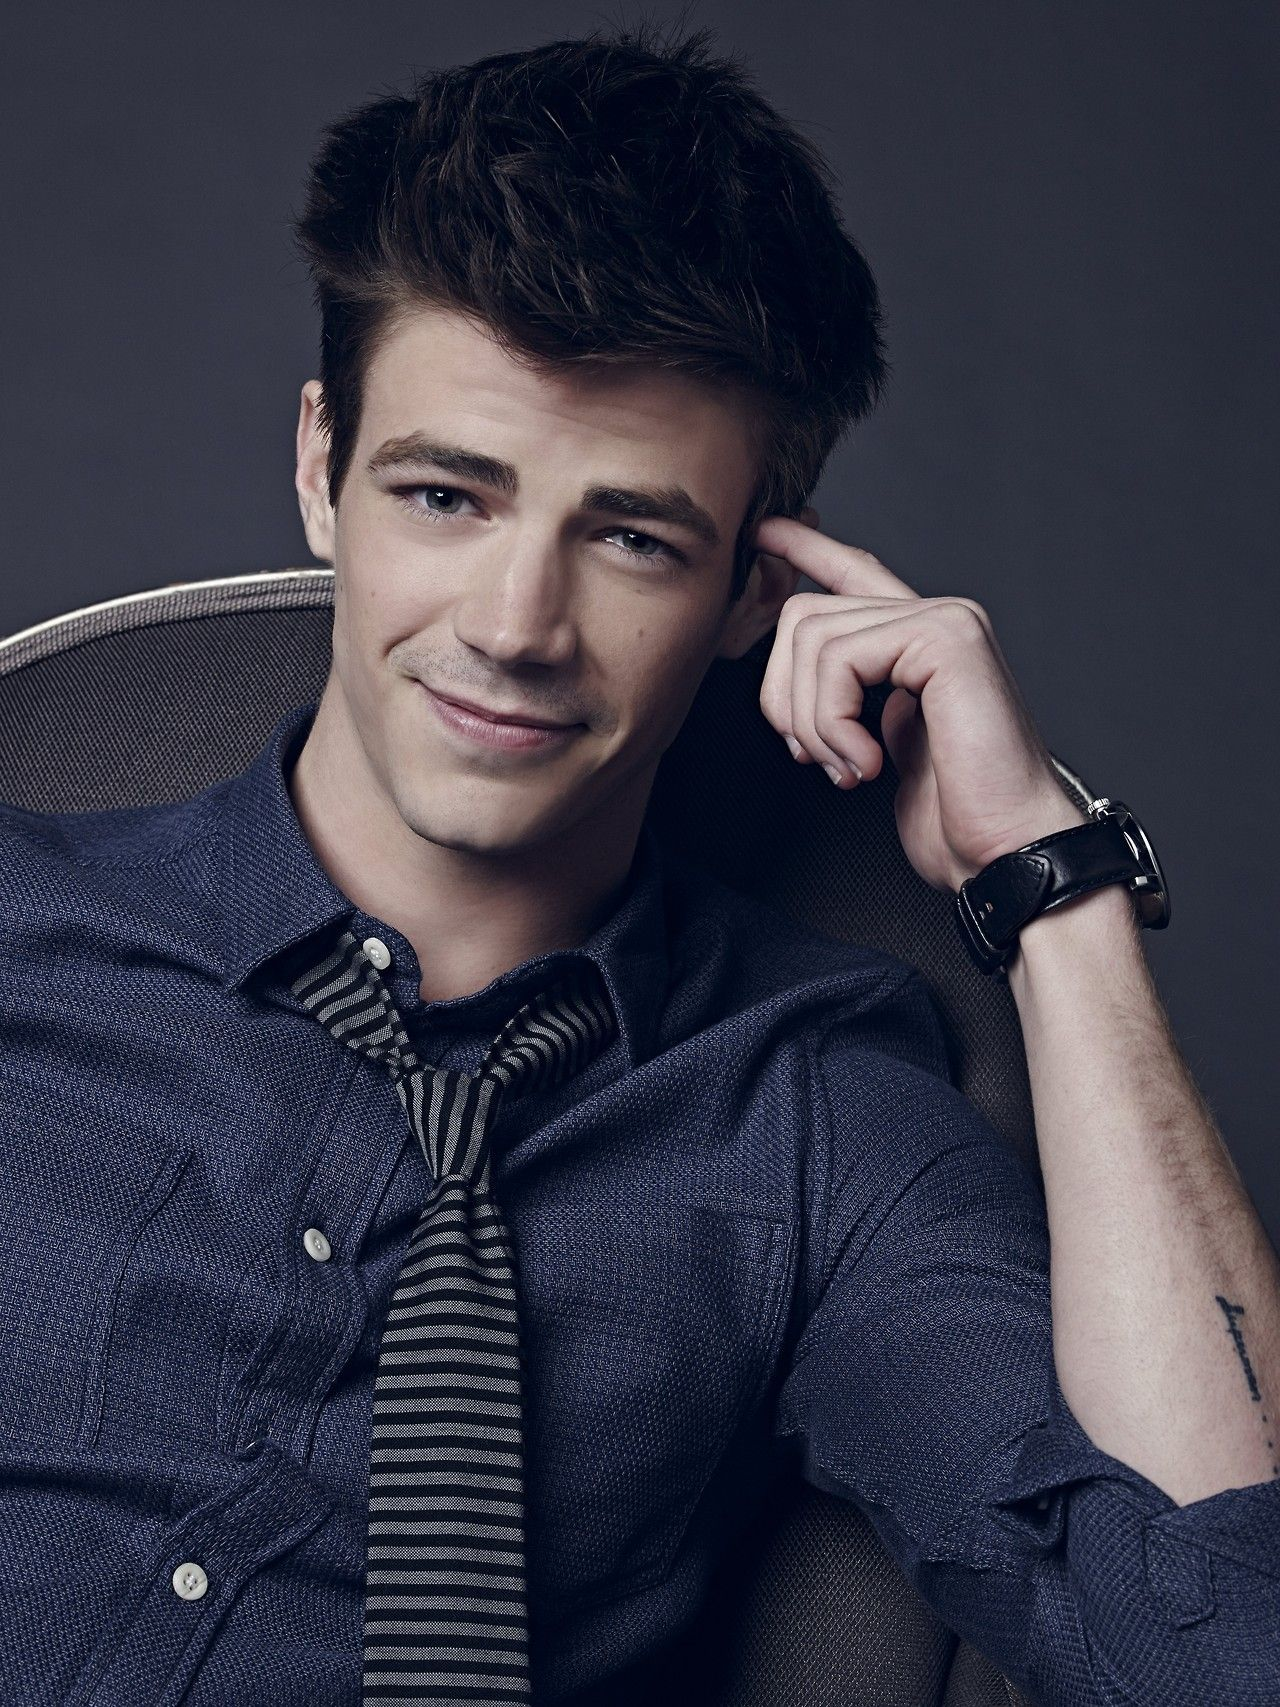 grant gustin песниgrant gustin gif, grant gustin glee, grant gustin vk, grant gustin twitter, grant gustin tumblr, grant gustin песни, grant gustin singing, grant gustin insta, grant gustin height, grant gustin hq, grant gustin facebook, grant gustin gif hunt, grant gustin glad you came, grant gustin and danielle panabaker, grant gustin smooth criminal, grant gustin инстаграм, grant gustin wiki, grant gustin films, grant gustin running home перевод, grant gustin – running home to you lyrics